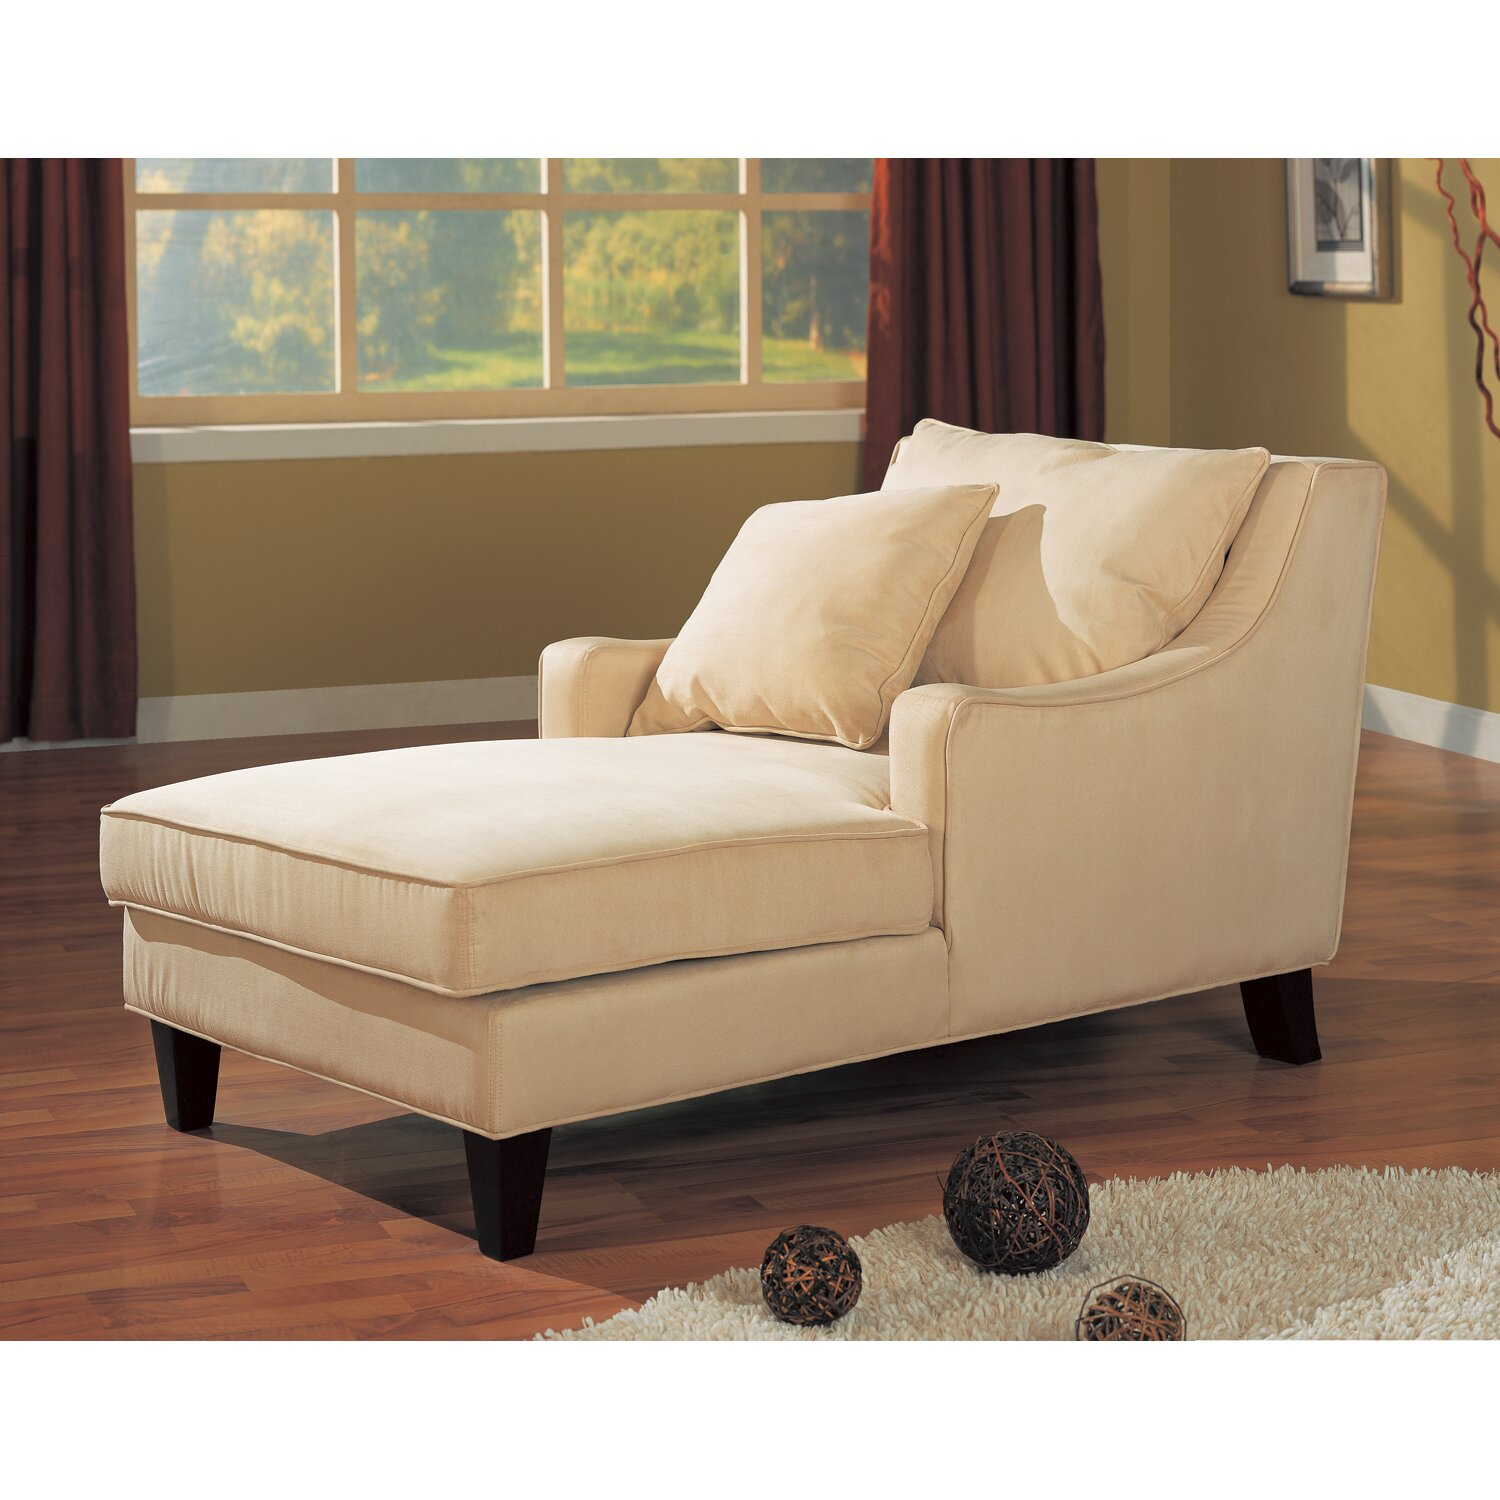 Wildon home sandy chaise reviews for Bernard chaise lounge